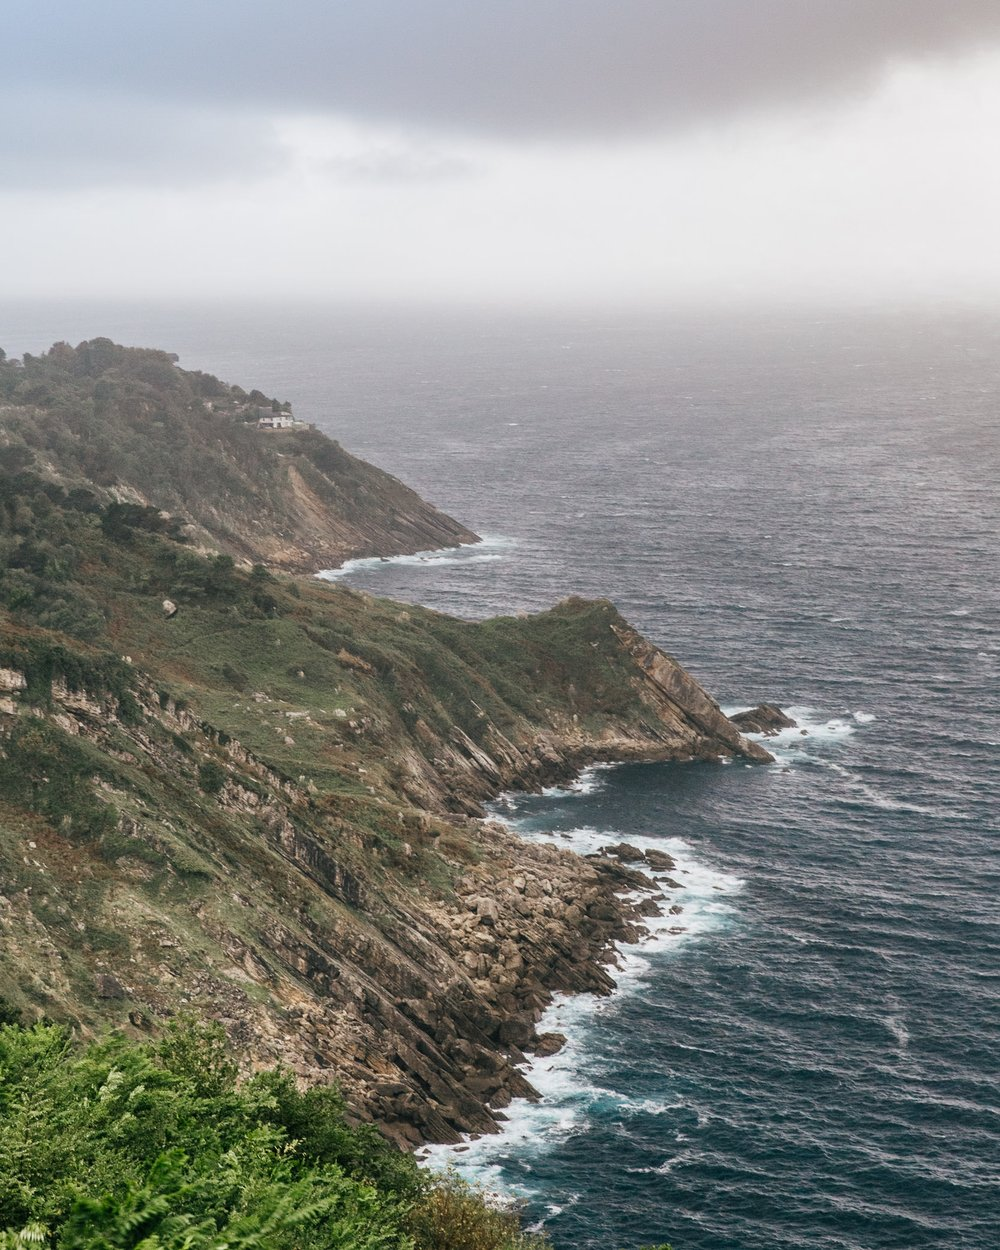 The view of the Basque Cliffs from Igueldo Mountain, San Sebastian